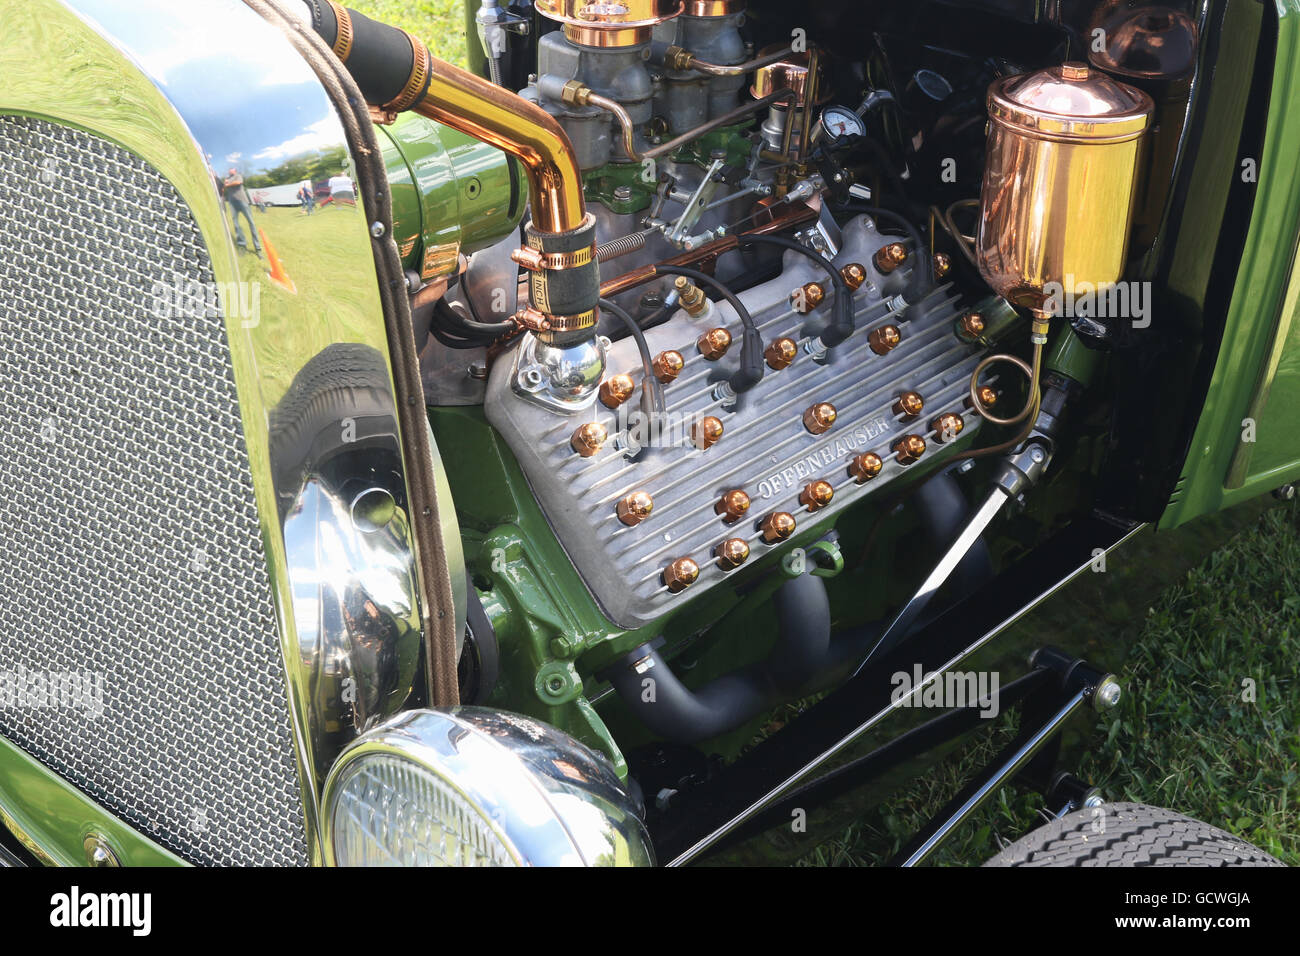 Old Pickup Engine Compartment : Engine compartment of ford pickup truck hotrod